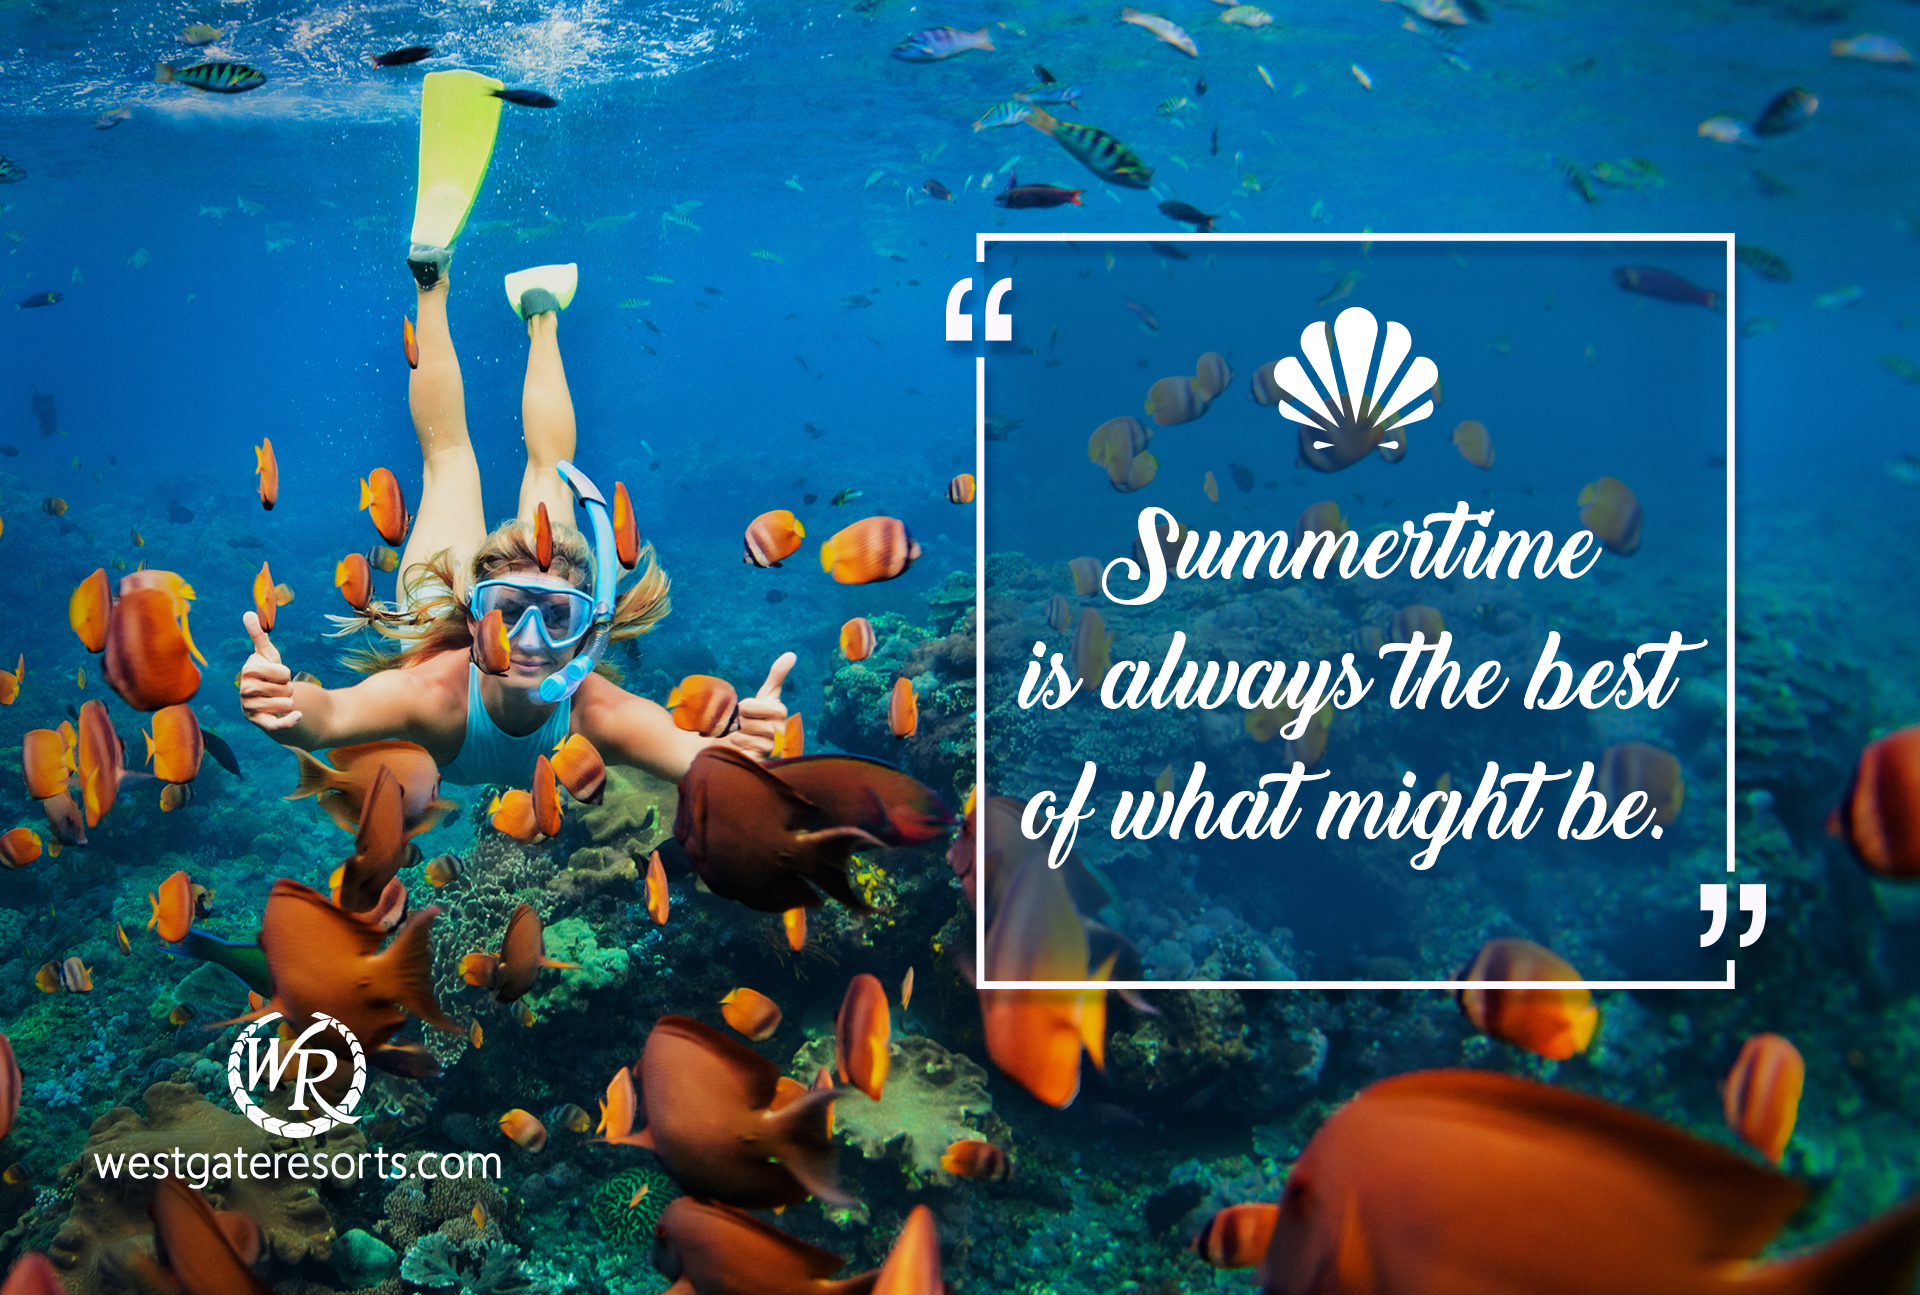 Summertime is always the best of what might be | Travel Motivation Quotes | Westgate Resorts